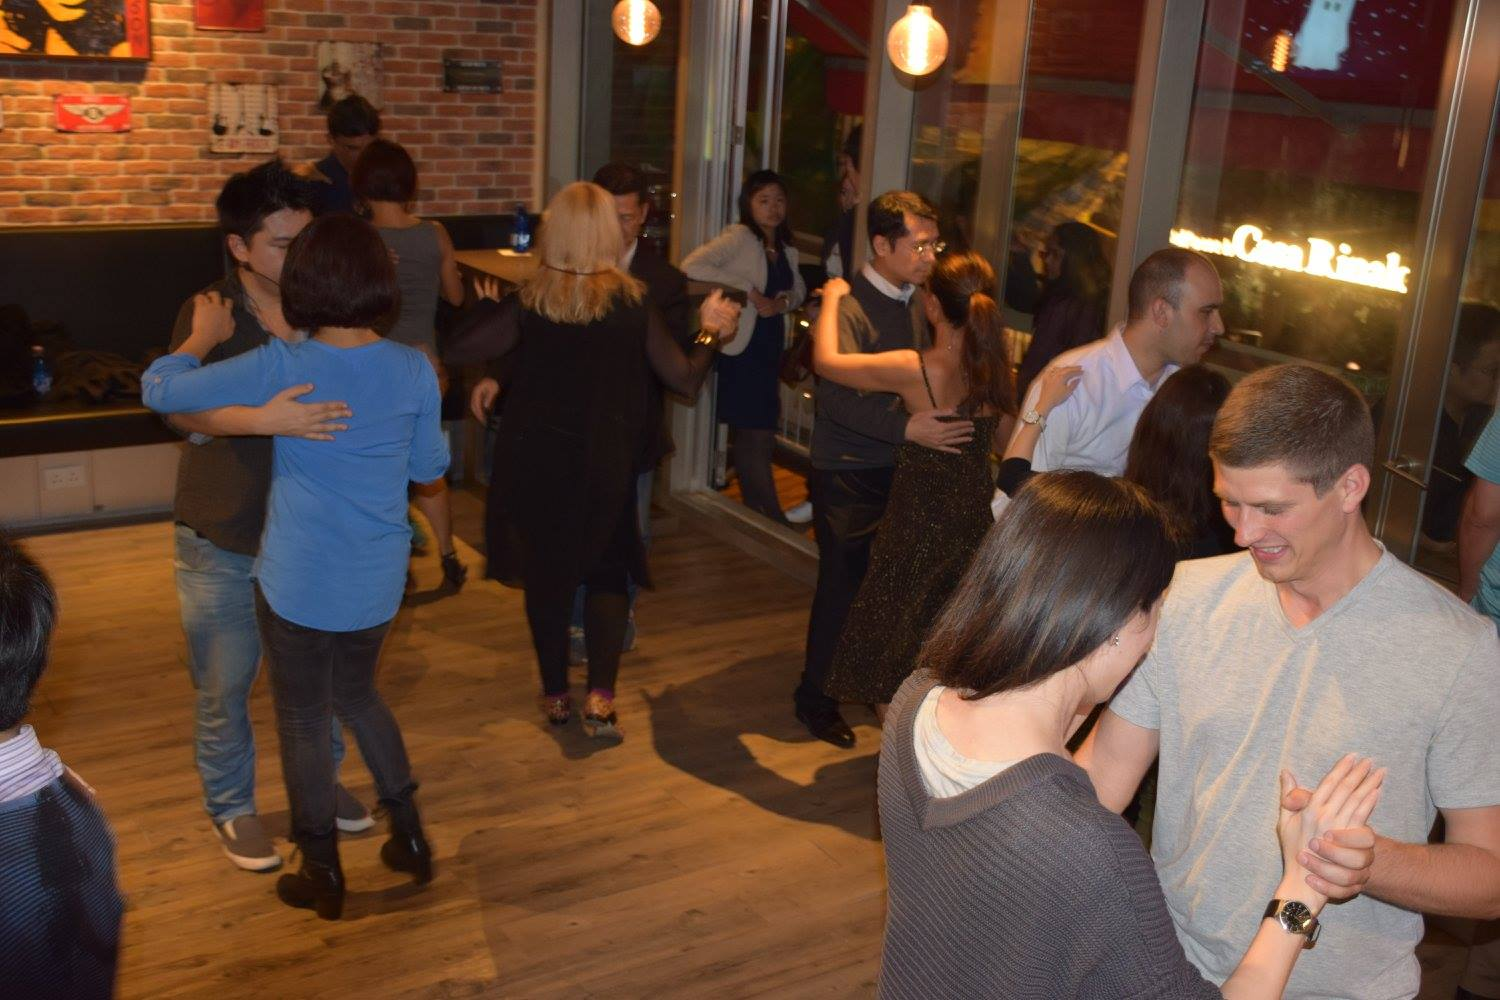 SCREAM NITE: A HALLOWEEN SALSA SPECIAL AT MORRISON CAFE & BAR: FRIDAY, 28TH OCTOBER – ENTRY FREE + 3 SALSA LESSONS + PARTY TILL LATE